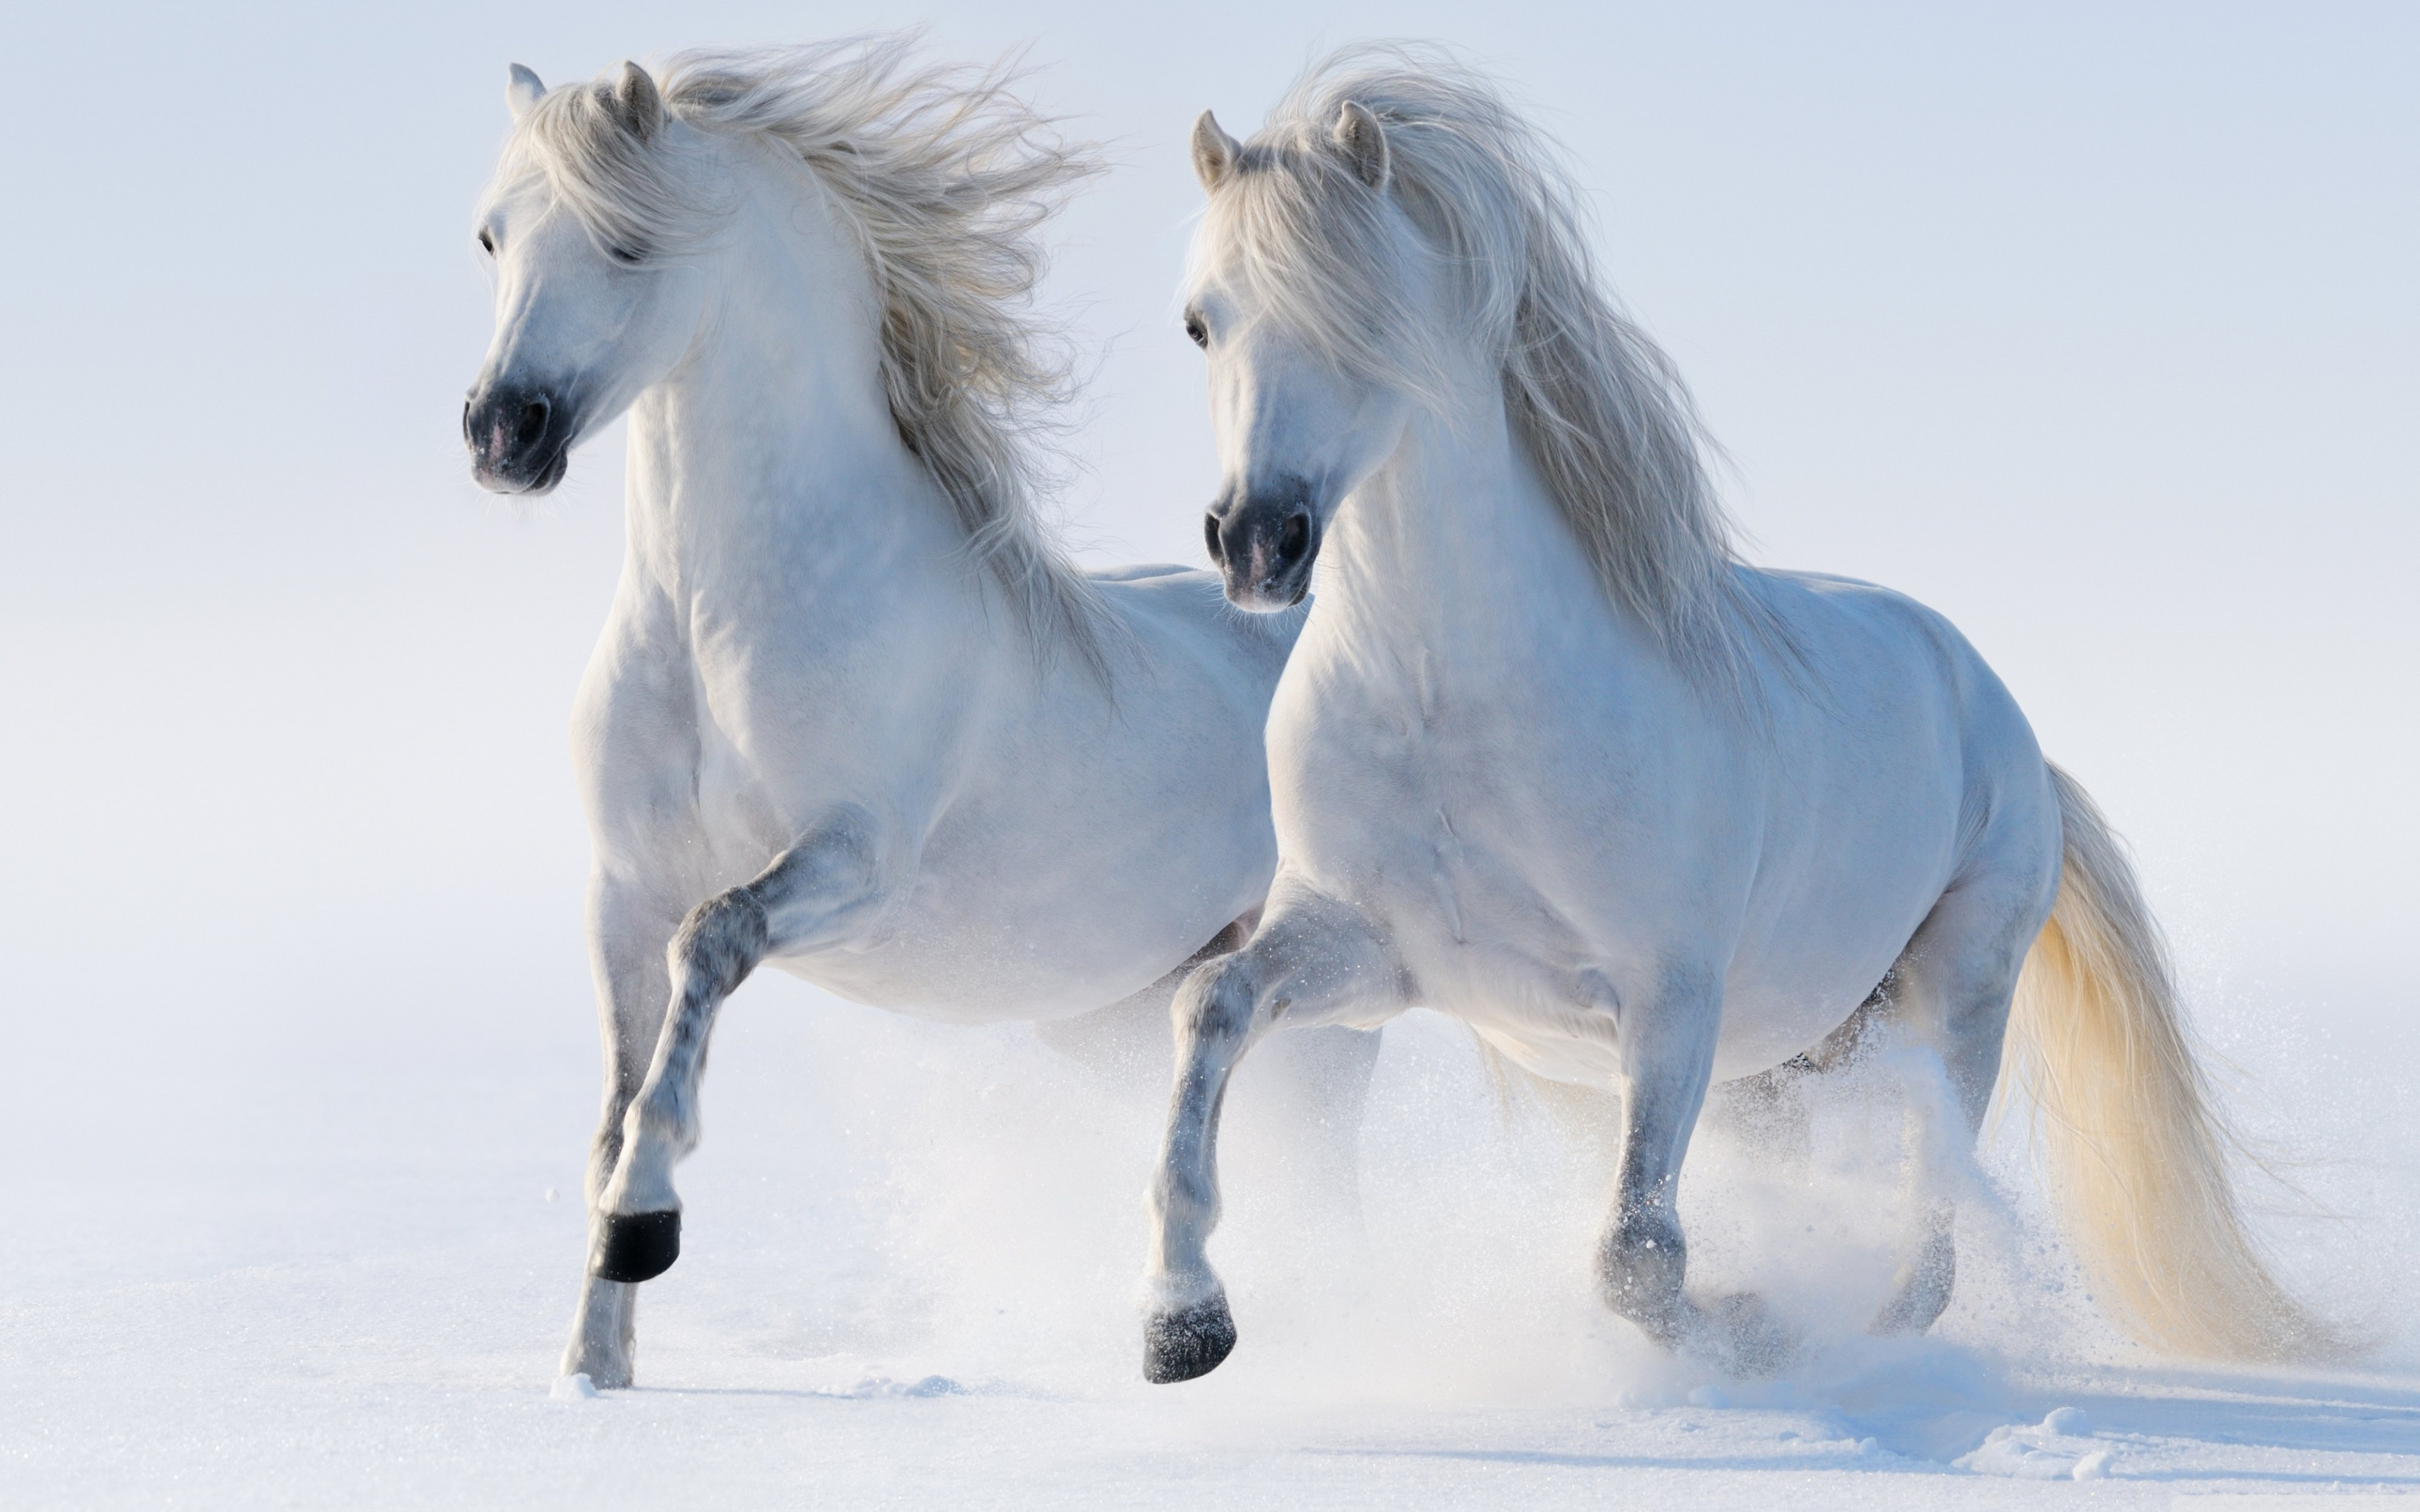 Wallpaper Of Horses